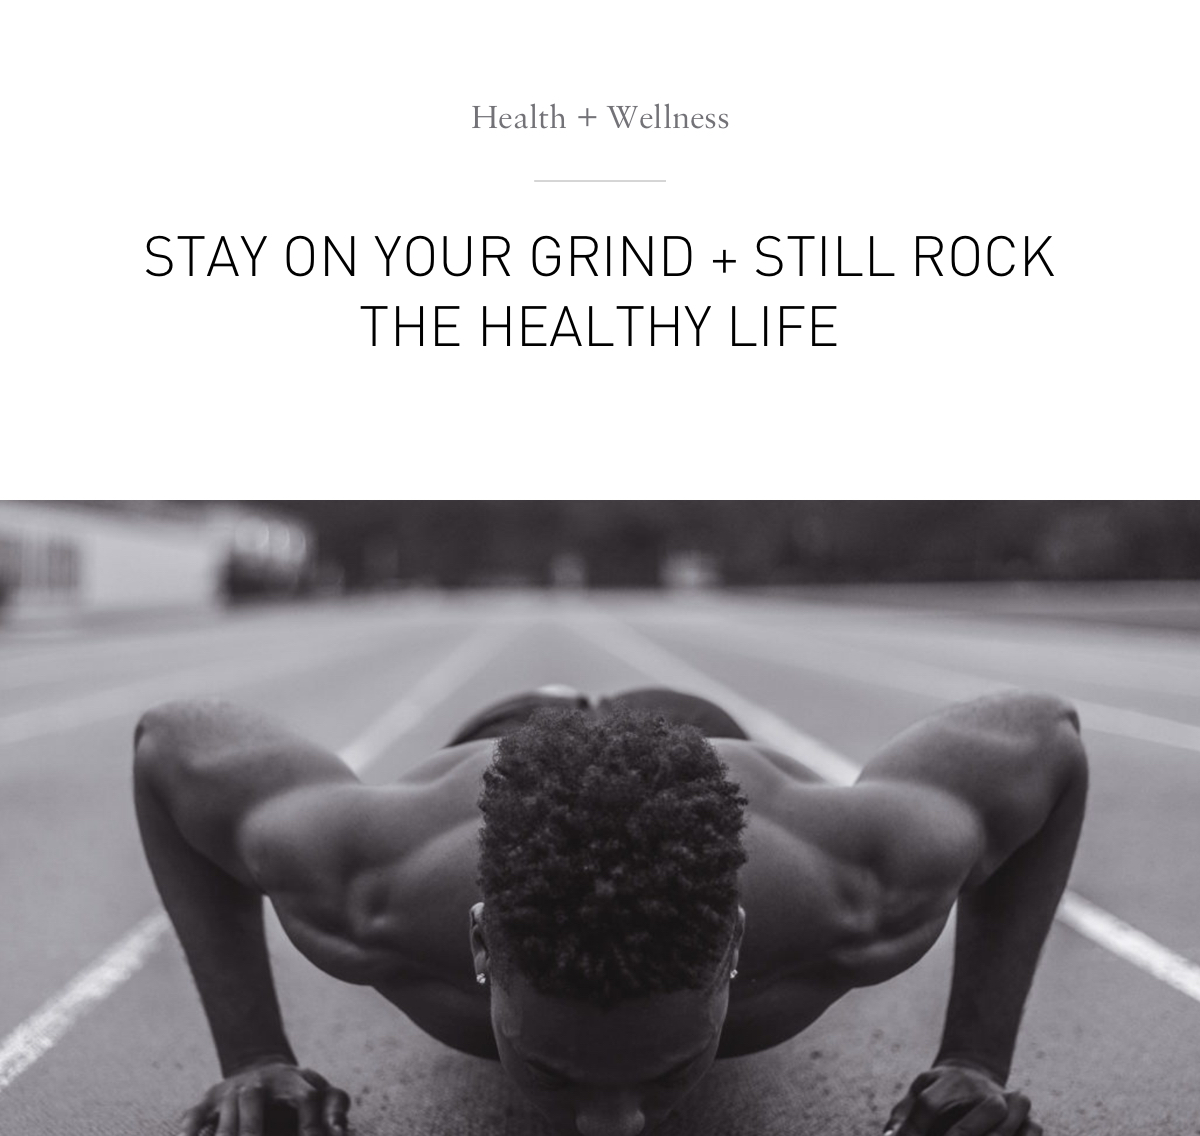 Stay On Your Grind